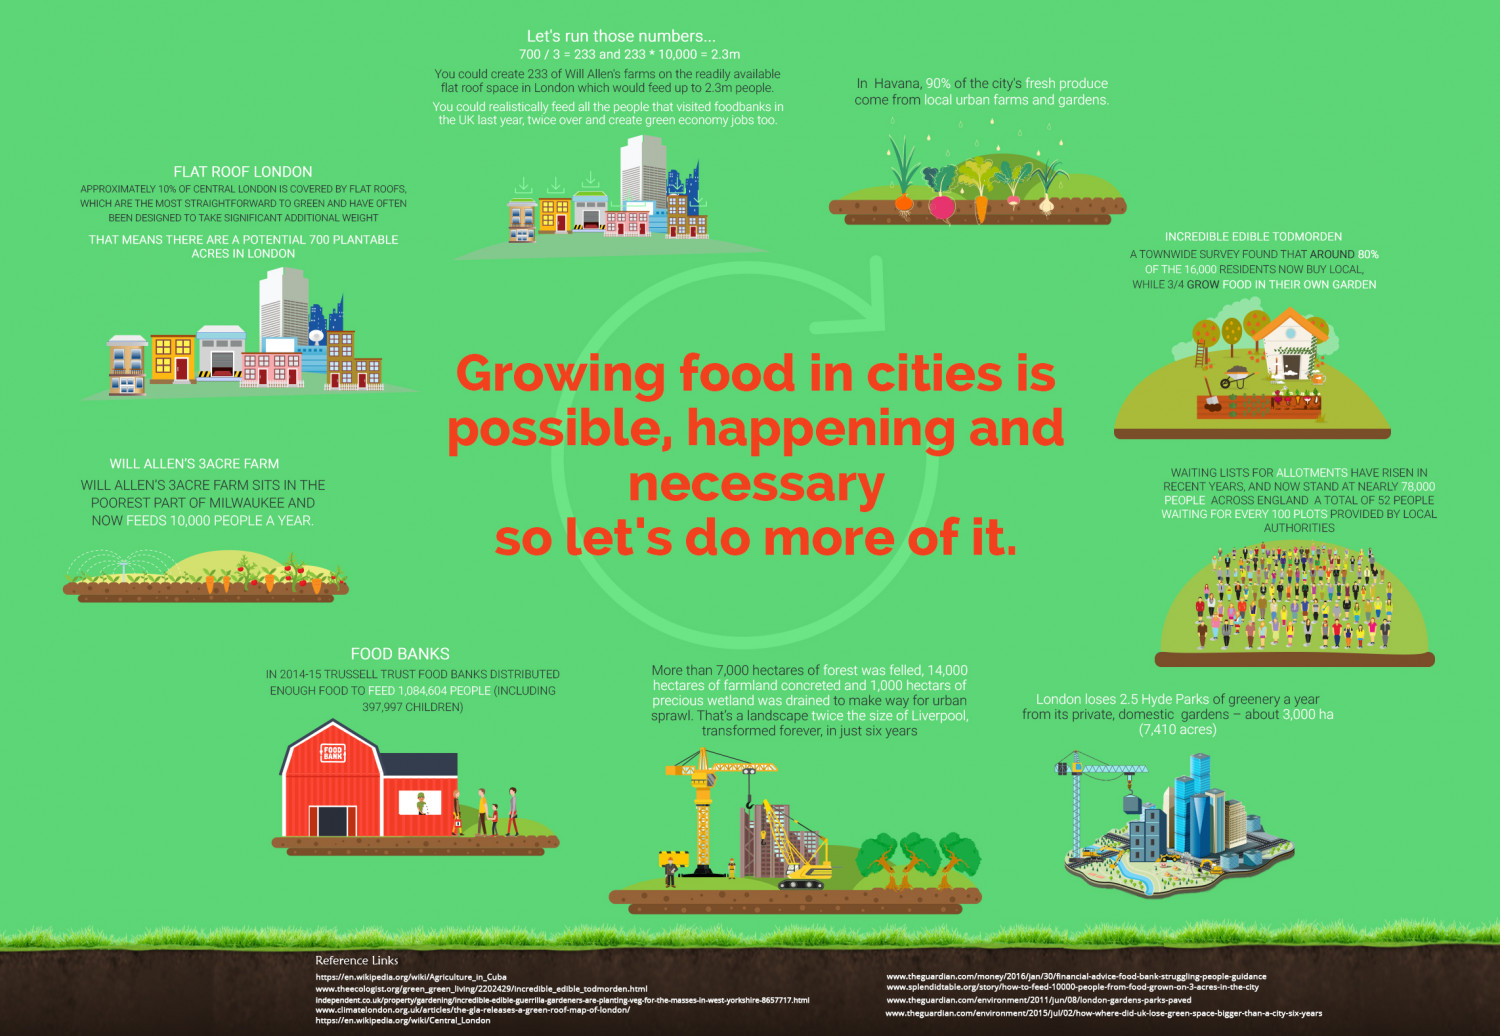 Growing food in cities is happening, possible and necessary Infographic